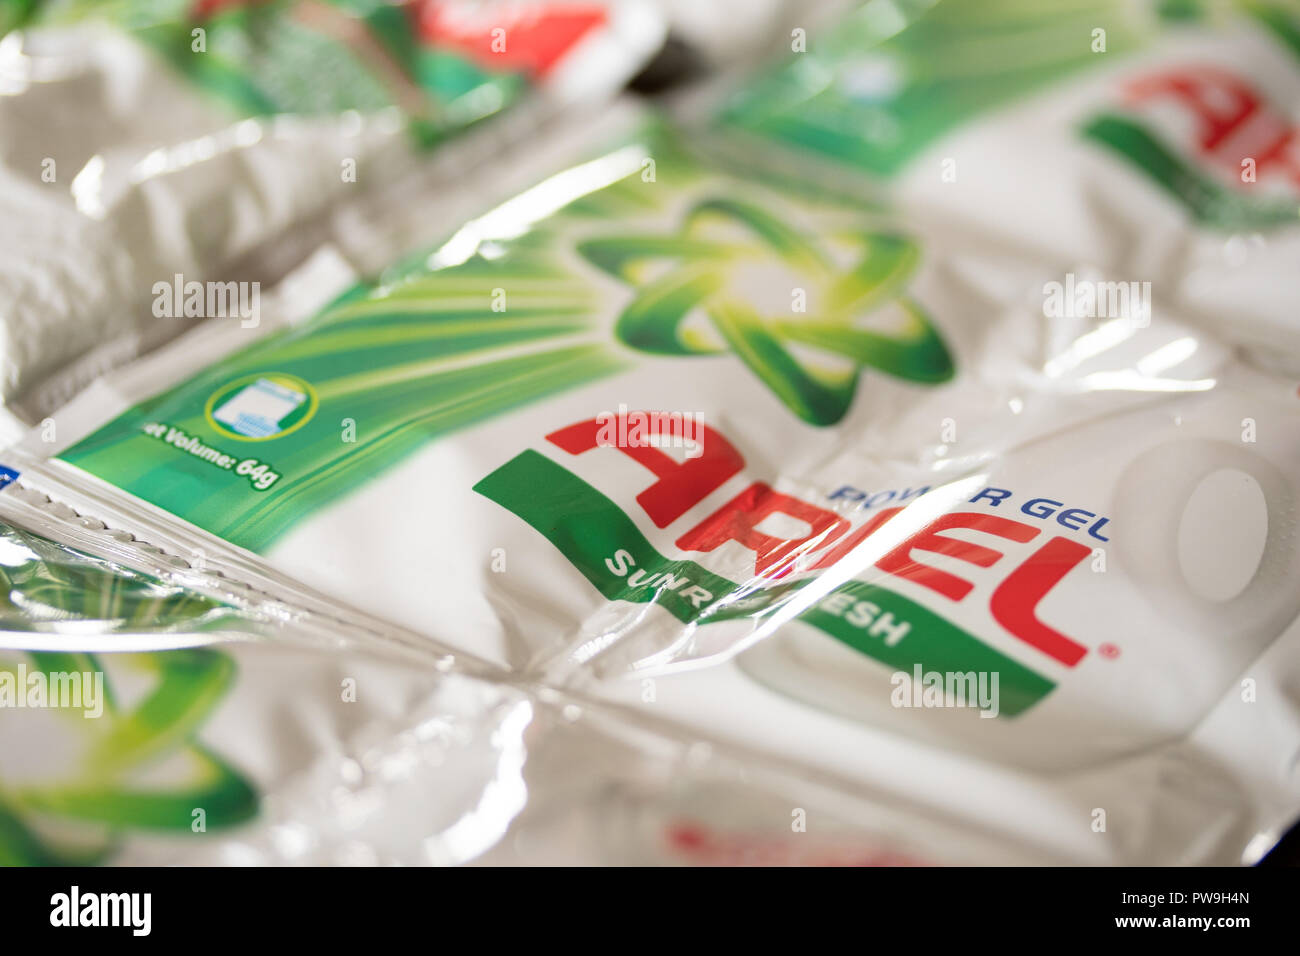 Concept Image of global warming & climate change.Small plastic sachets of detergent which are commonly used in  the Philippines,often discarded into t - Stock Image